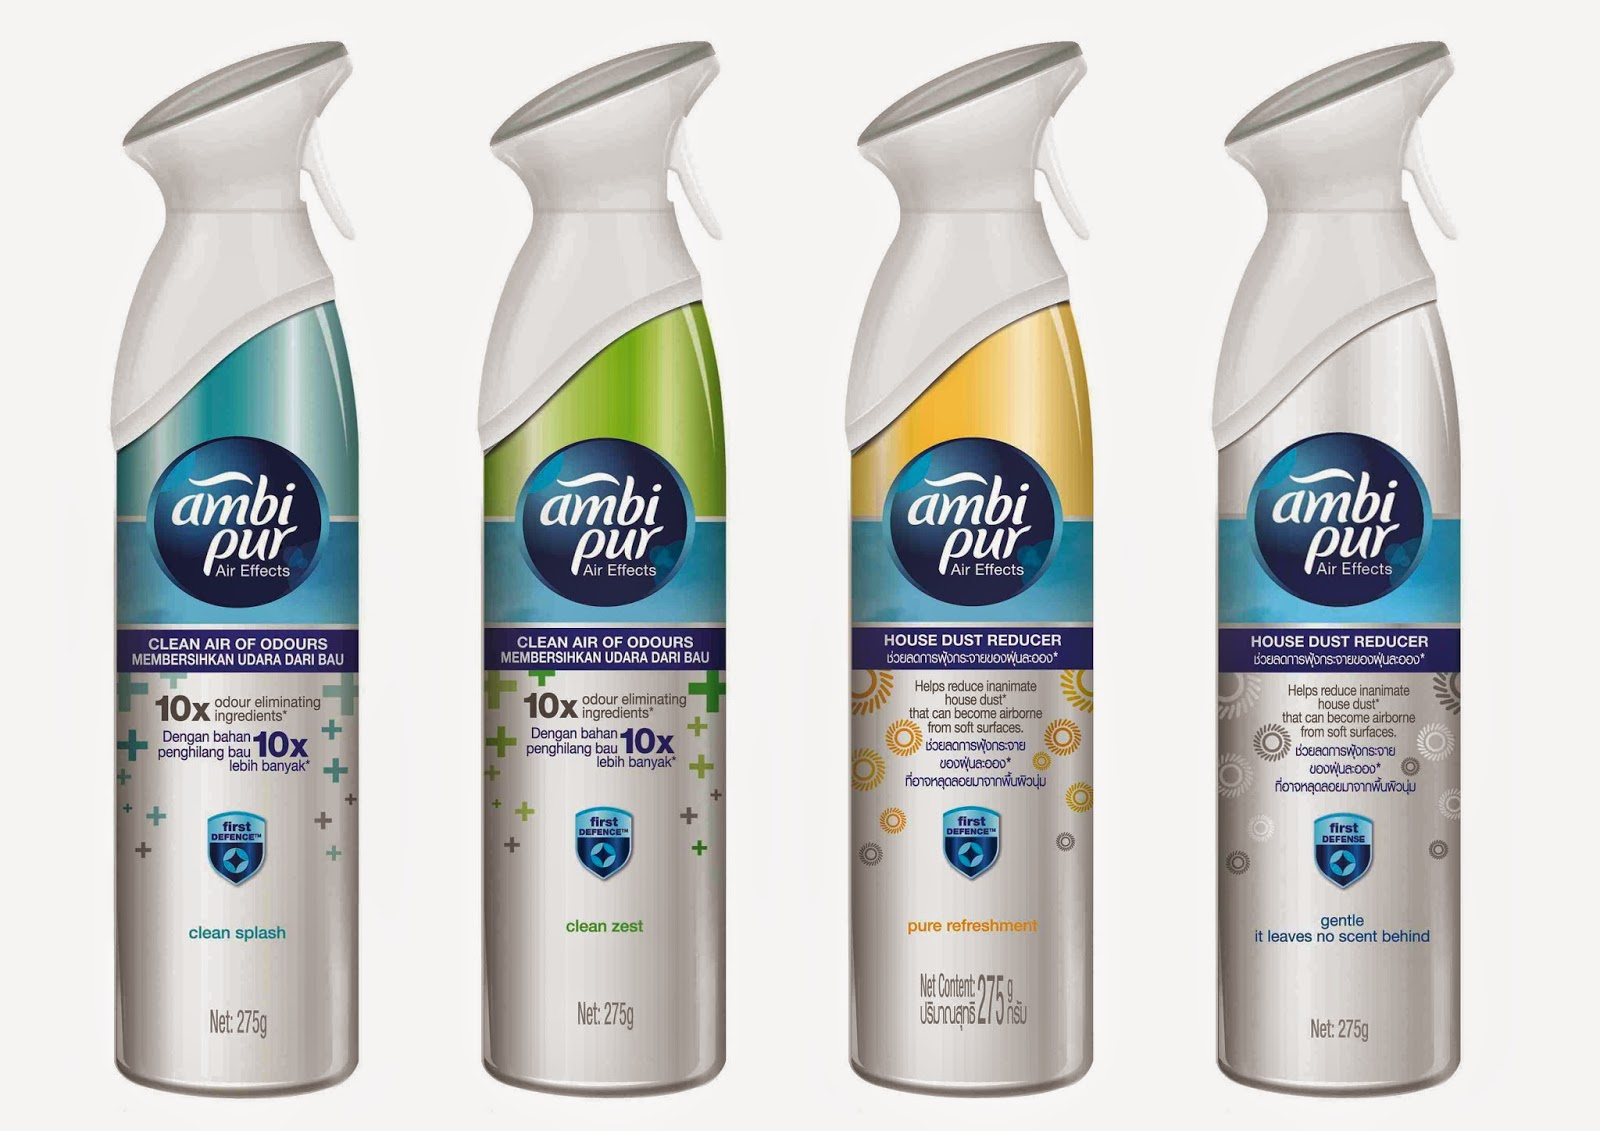 image-ambi-pur-air-effects-febreze-first-defense-price